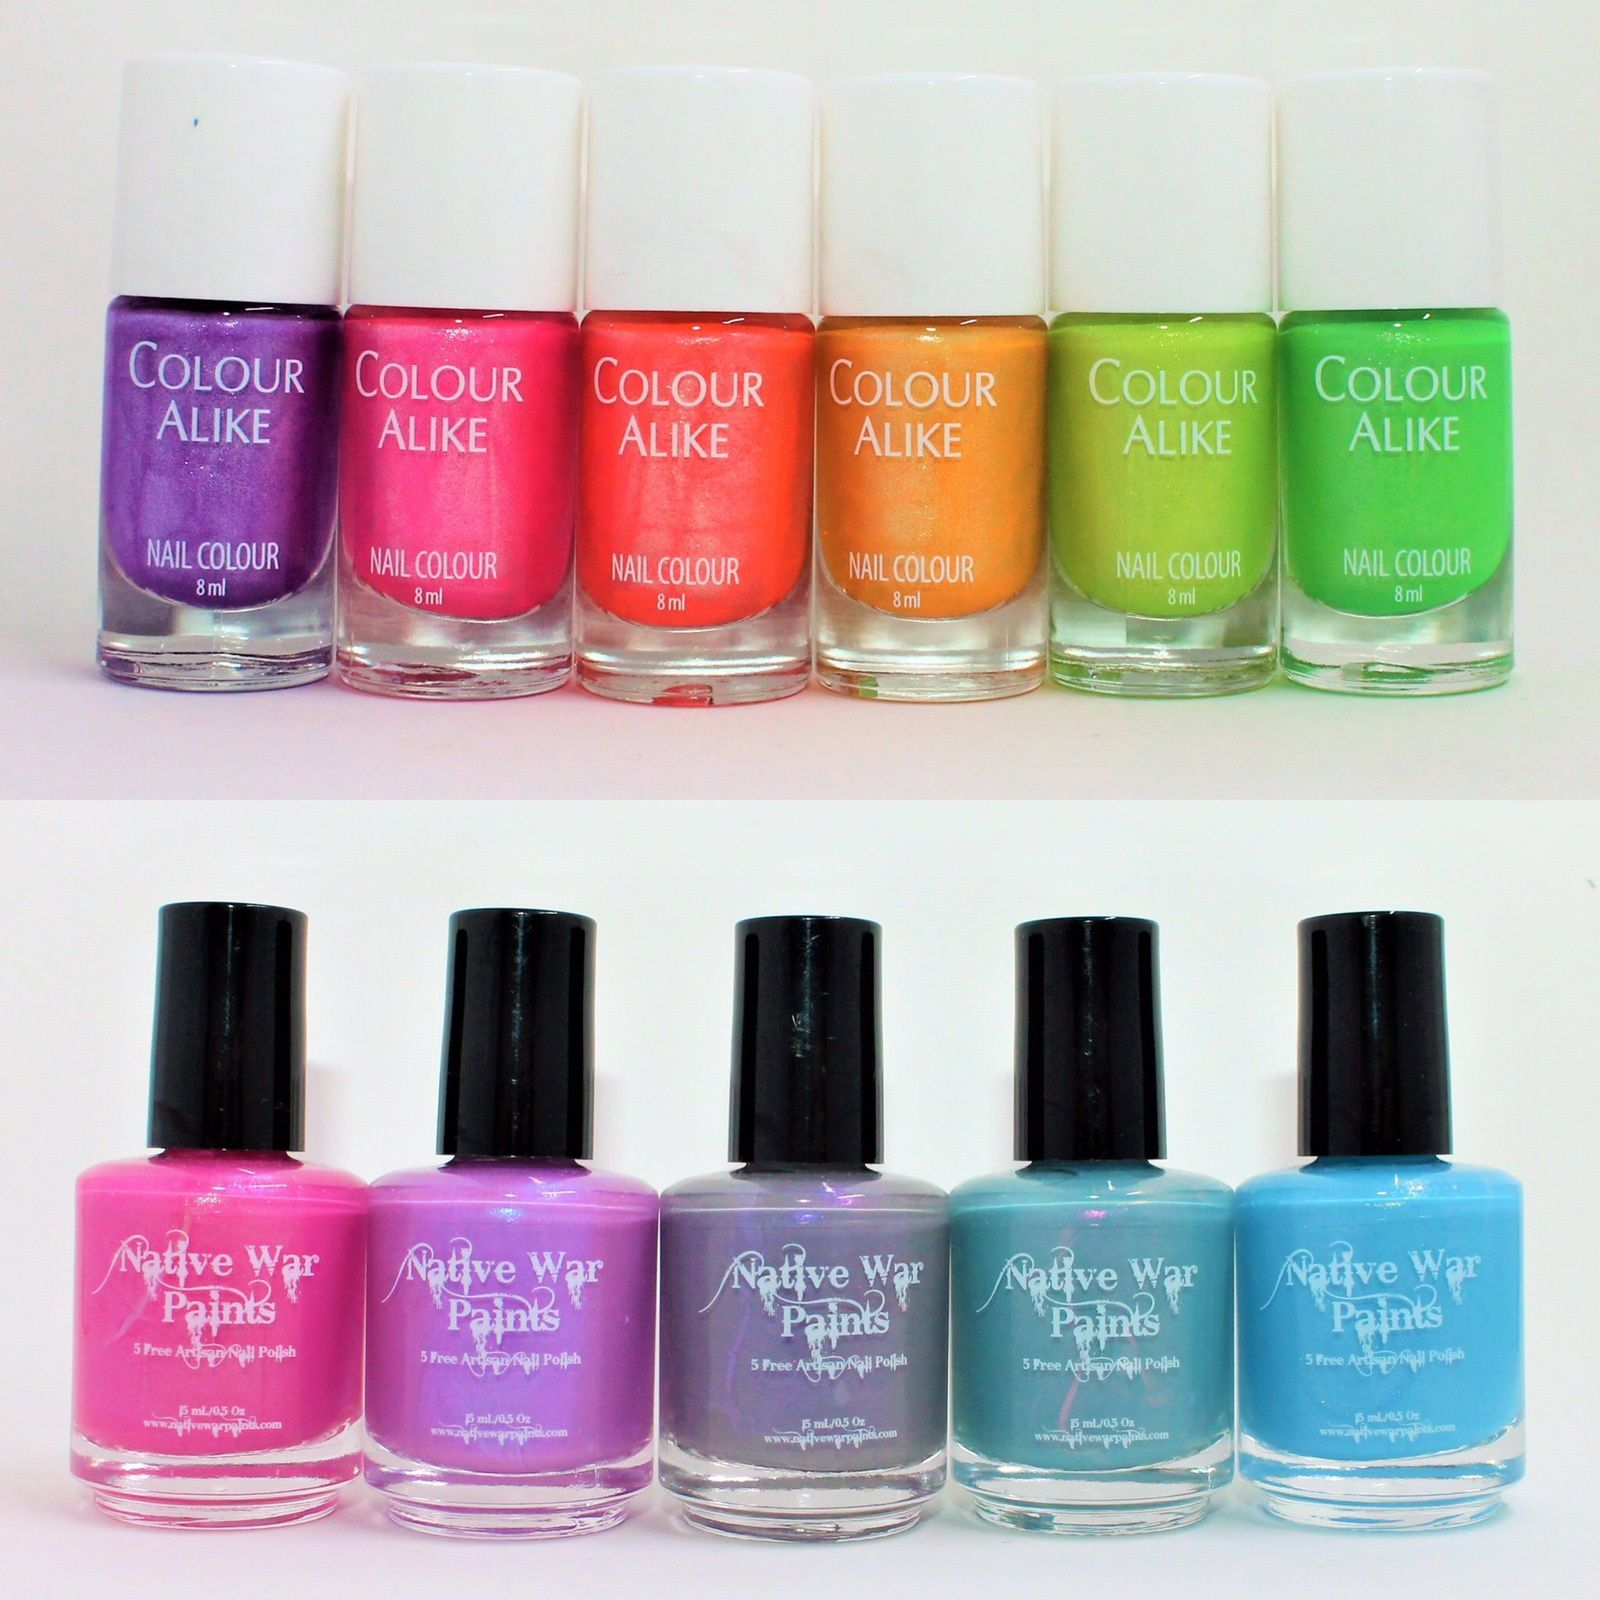 Colour Alike Disco Collection (Goin' to the Funkytown, We Can Boogie, Dance Fever, Shake It, Who's Cool, MYCA). Native War Paints Physical Touch, Quality Time, Words of Affirmation, Receiving Gidts, Act of Service.